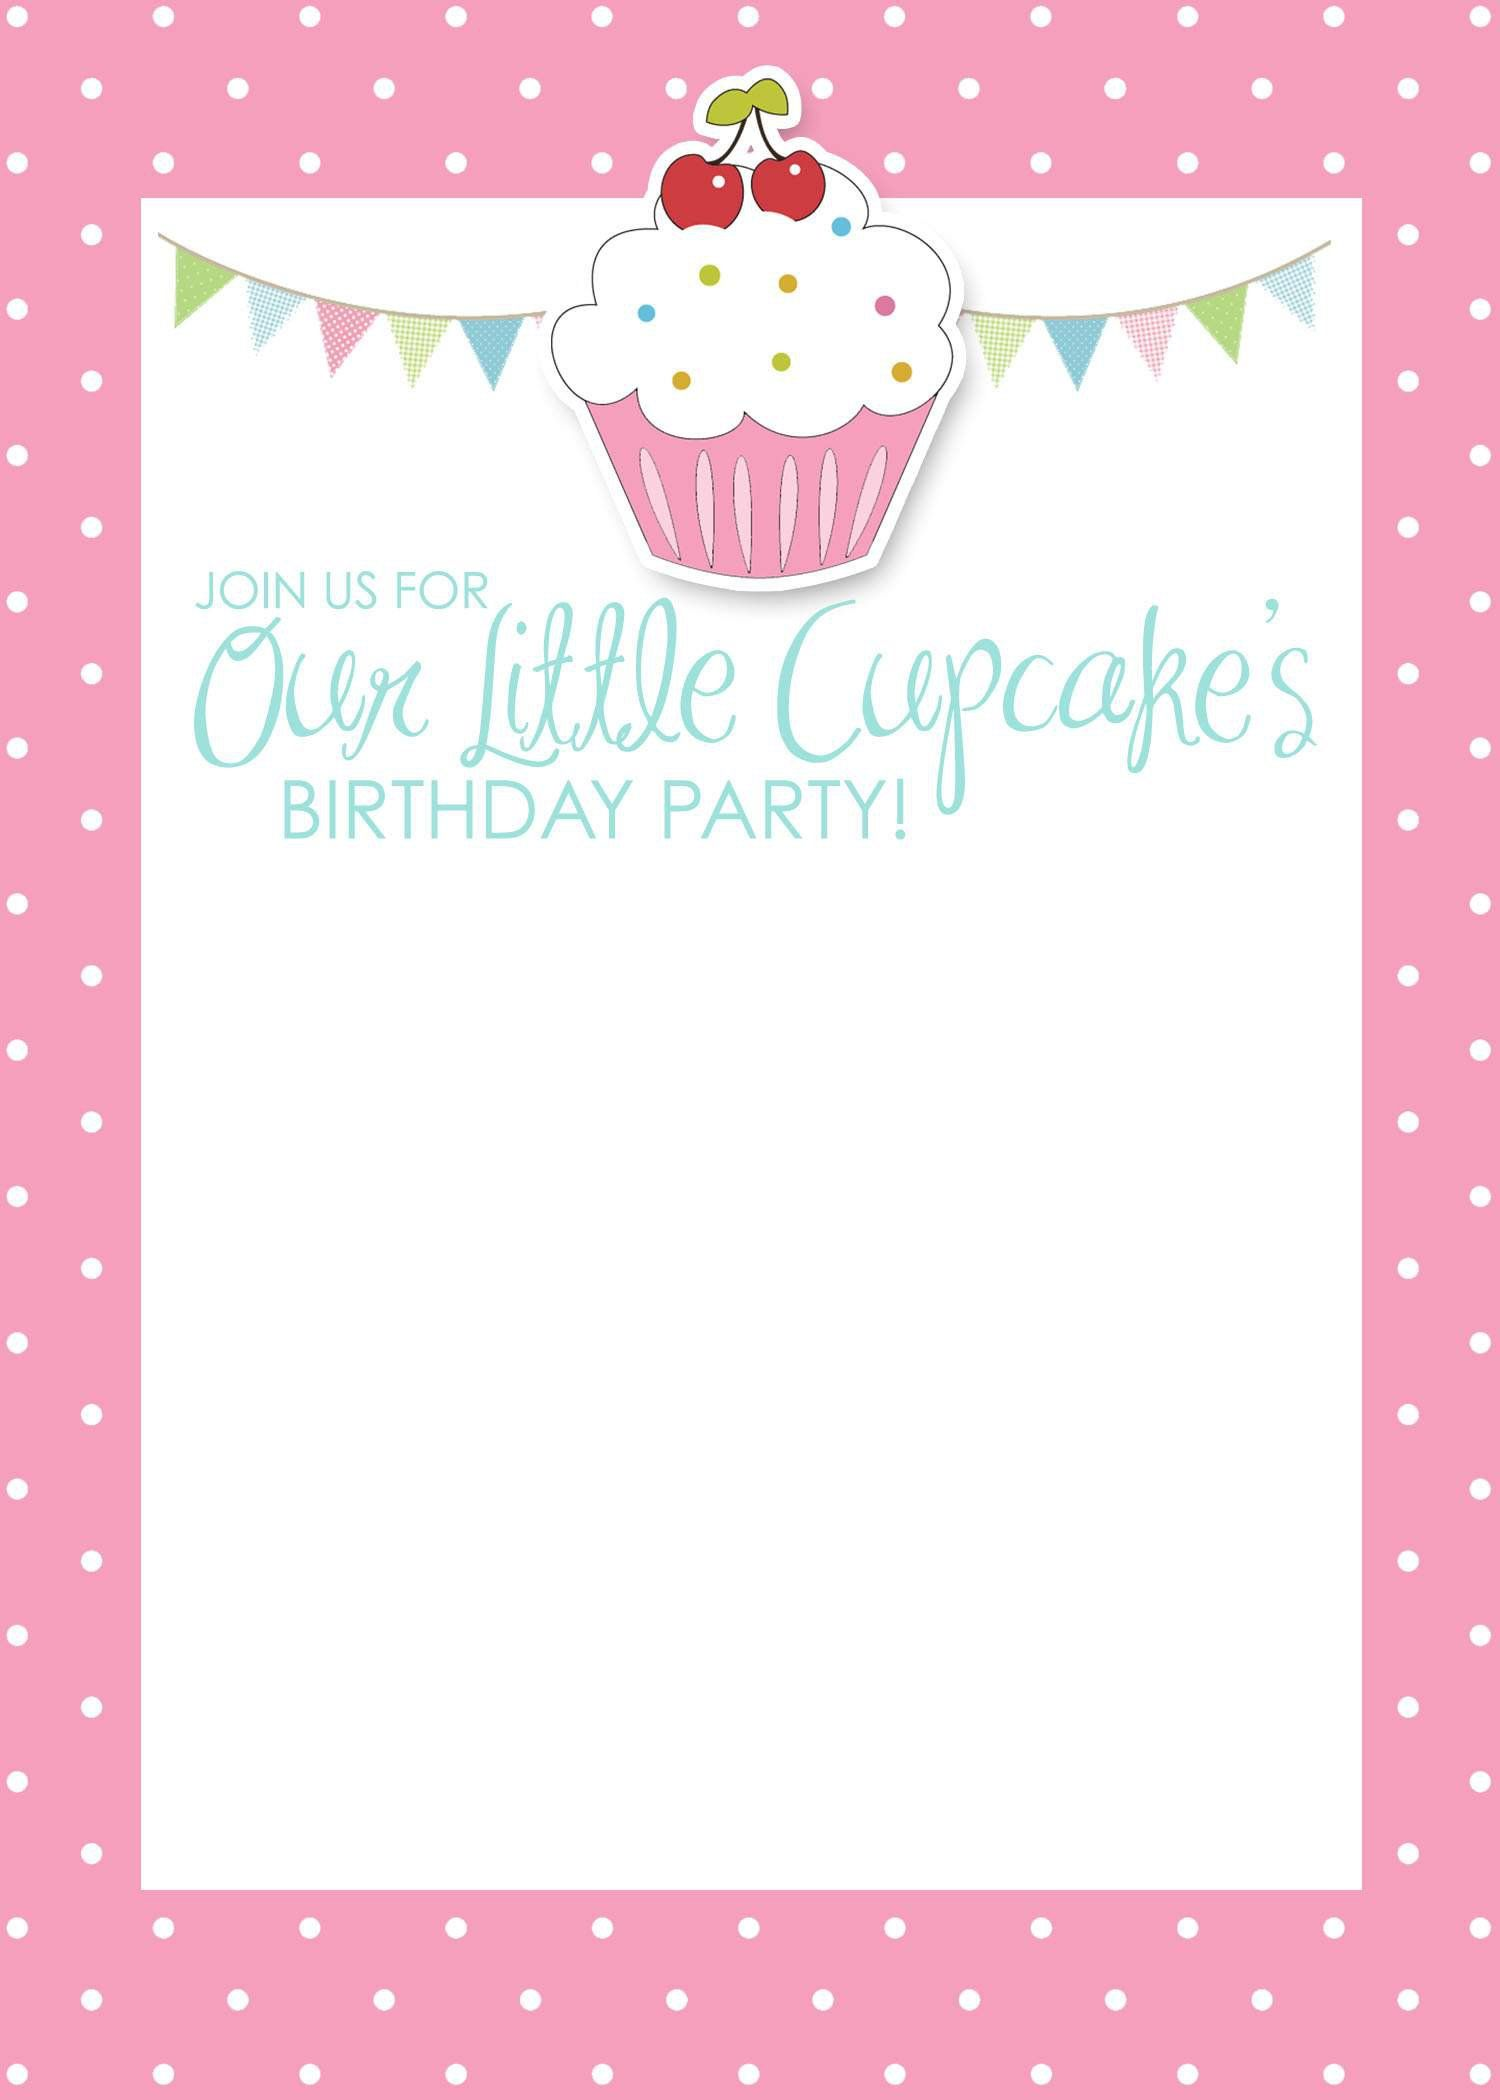 Birthday invitation card template free birthday invitations birthday invitation card template free filmwisefo